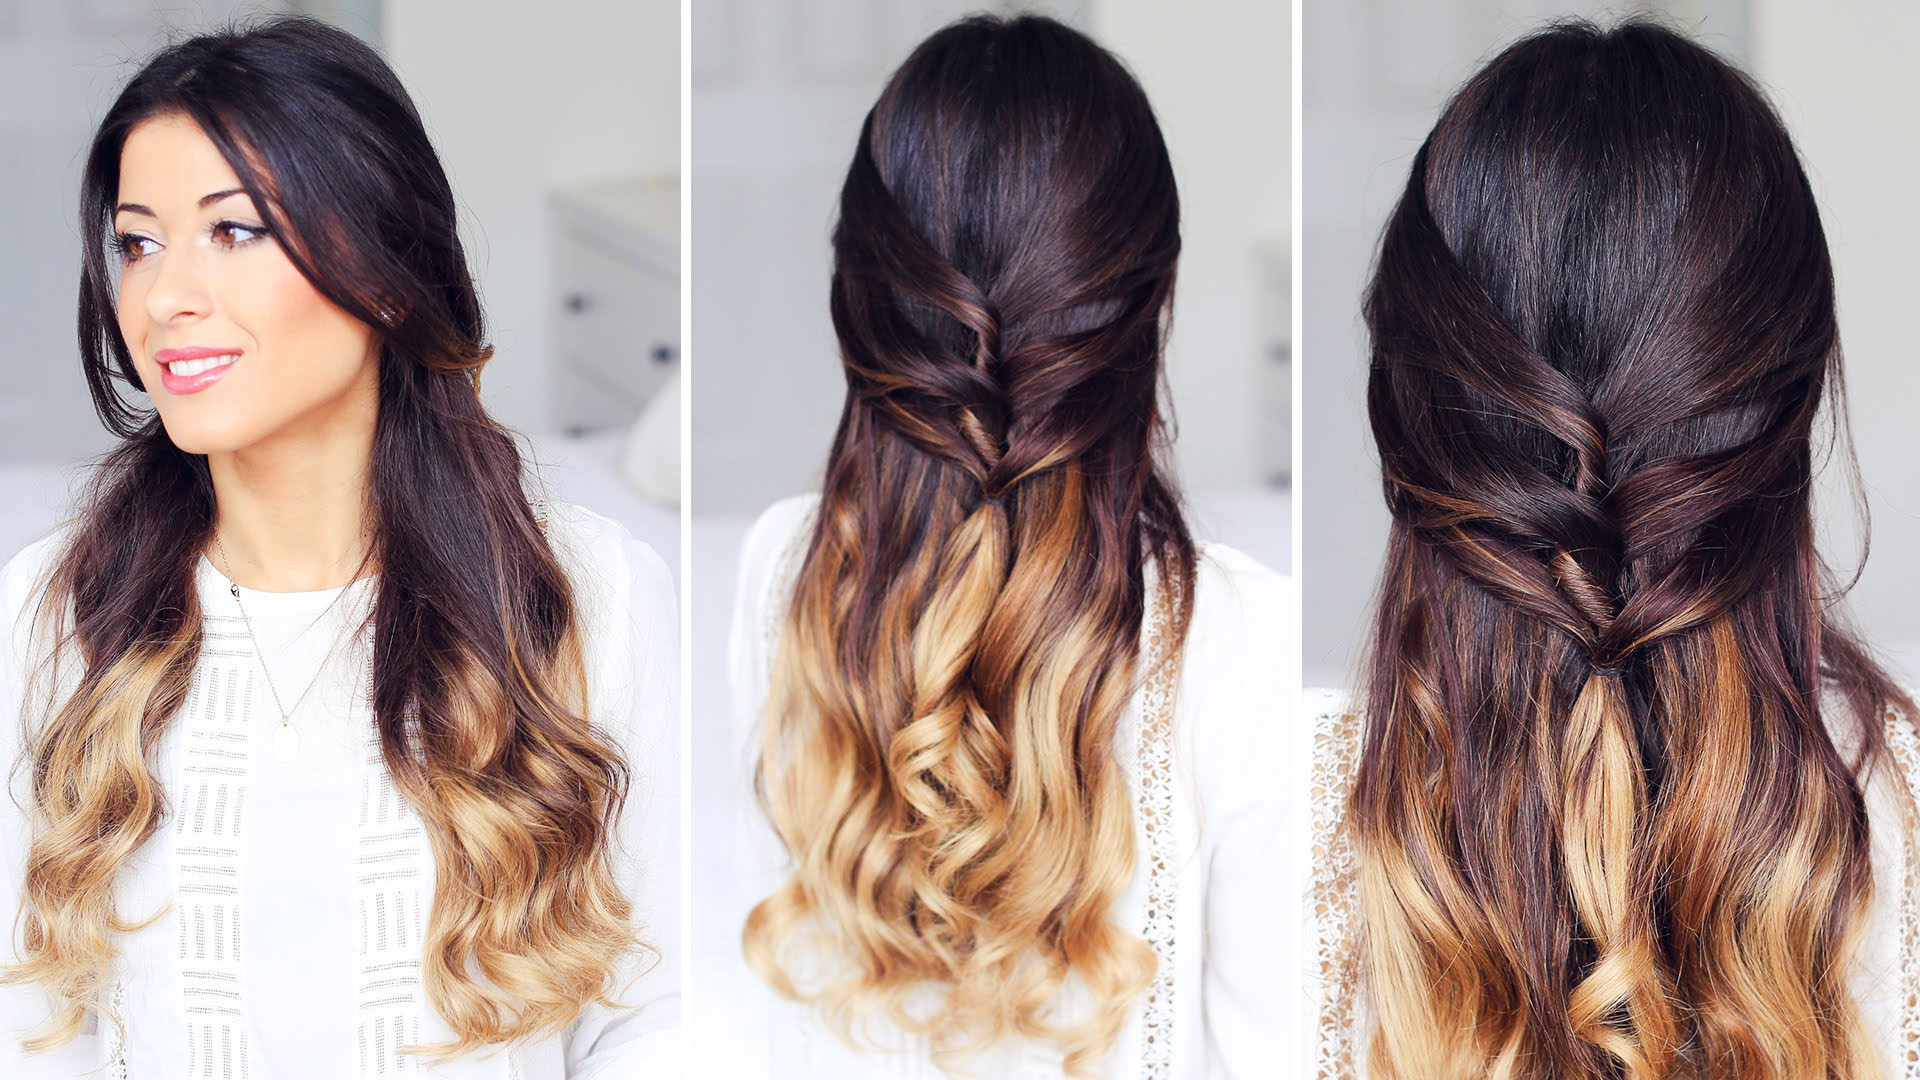 Best ideas about Cute Half Up Half Down Hairstyles . Save or Pin Basic hairstyles for Cute Half Up Half Down Hairstyles Now.